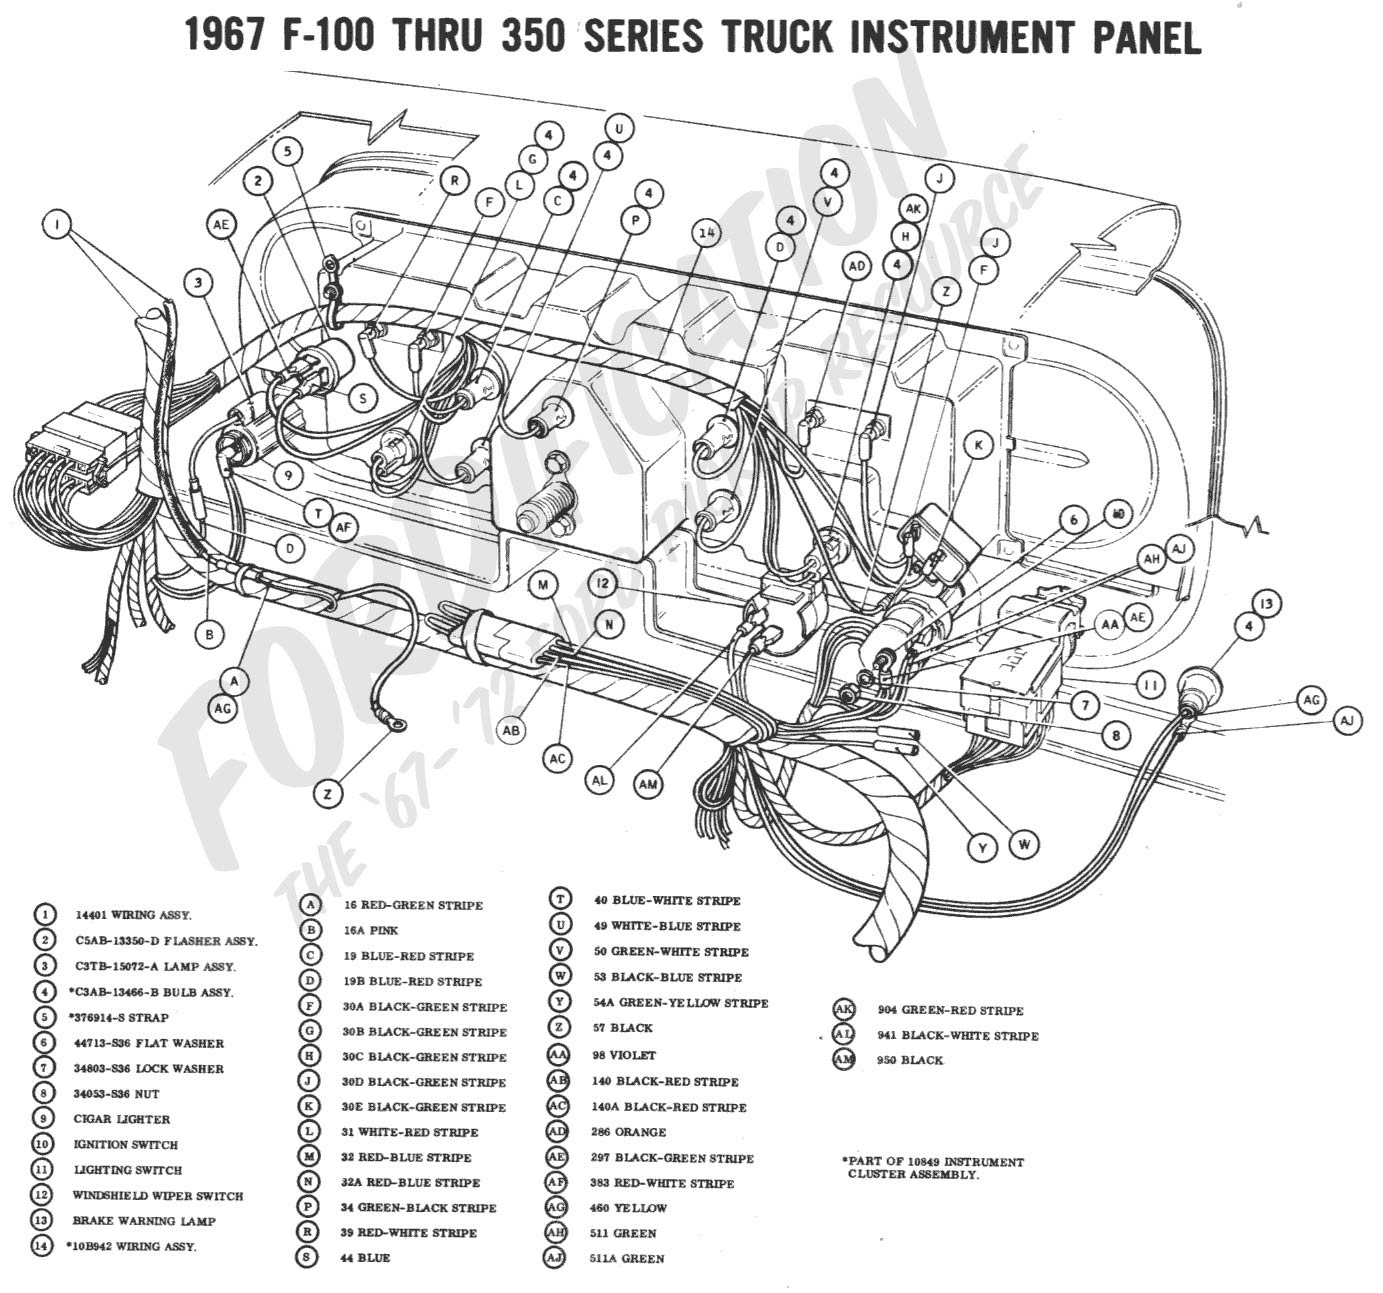 Diagram 2001 Ford F350 Windshield Washer Wiring Diagram Full Version Hd Quality Wiring Diagram Turbocombustionengine Hotelagriturismovacanze It